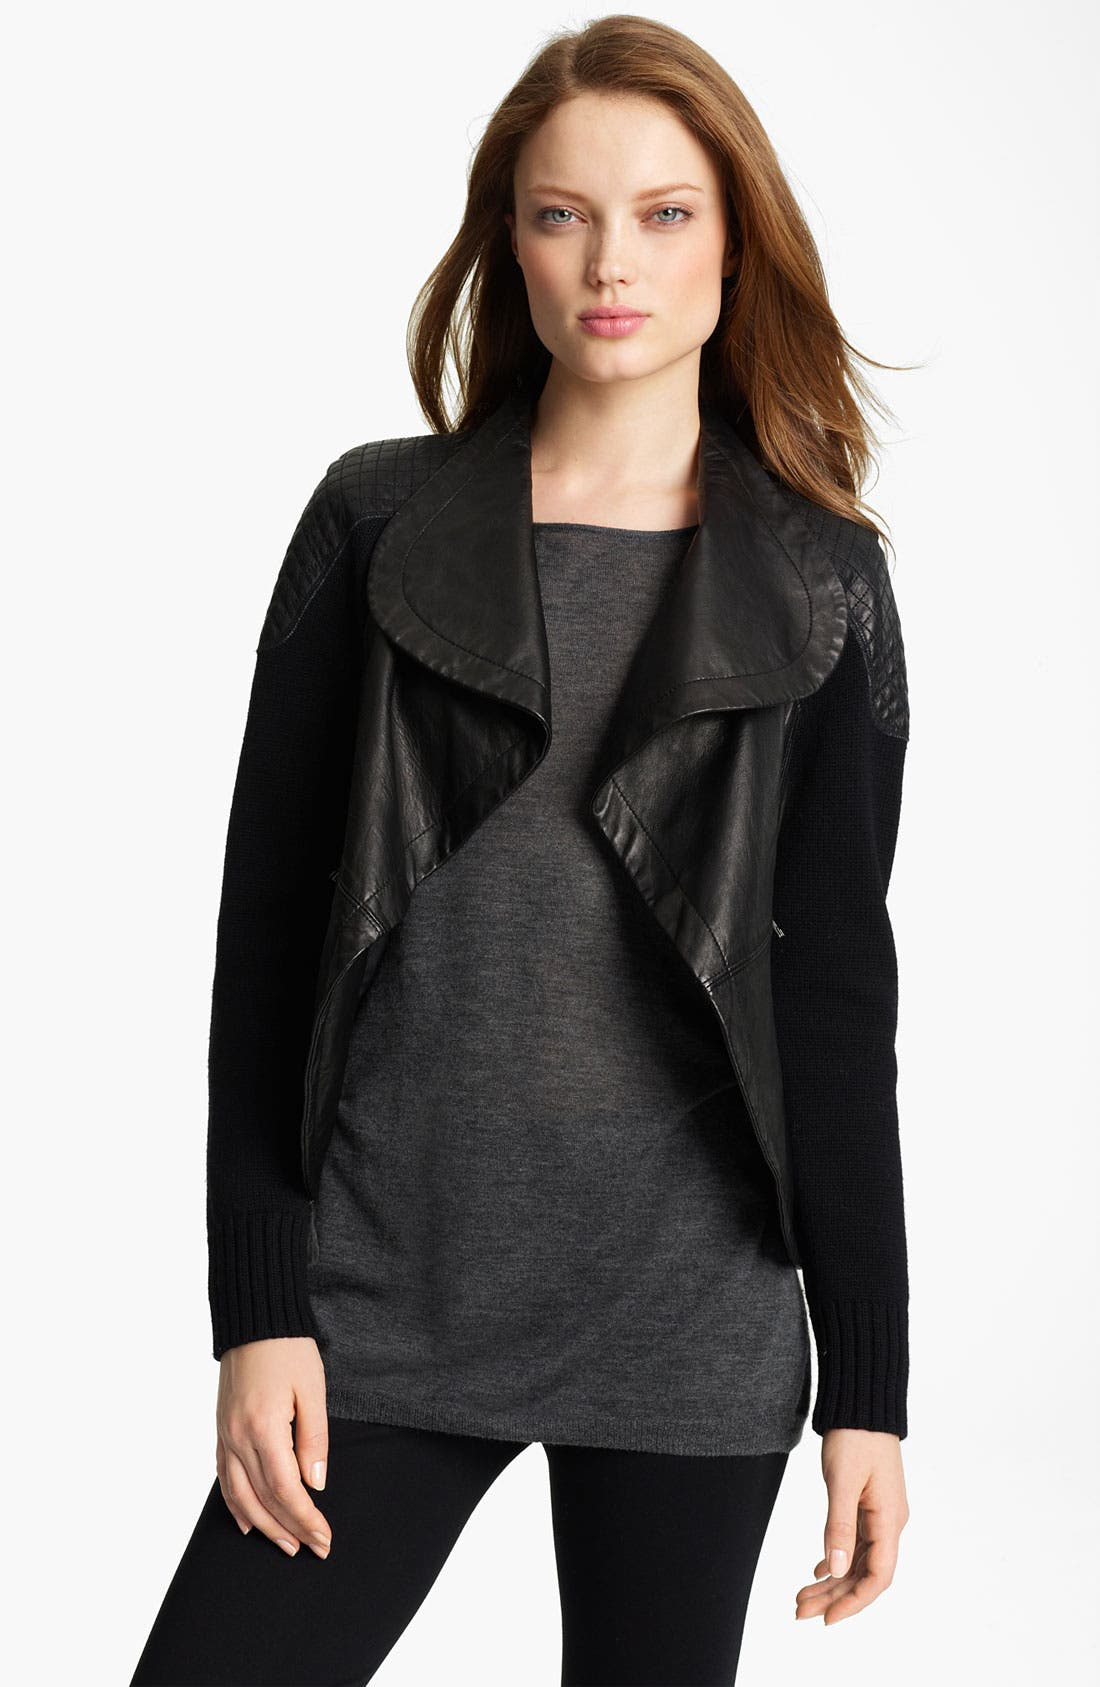 Alternate Image 1 Selected - Yigal Azrouël Drape Front Leather & Knit Jacket